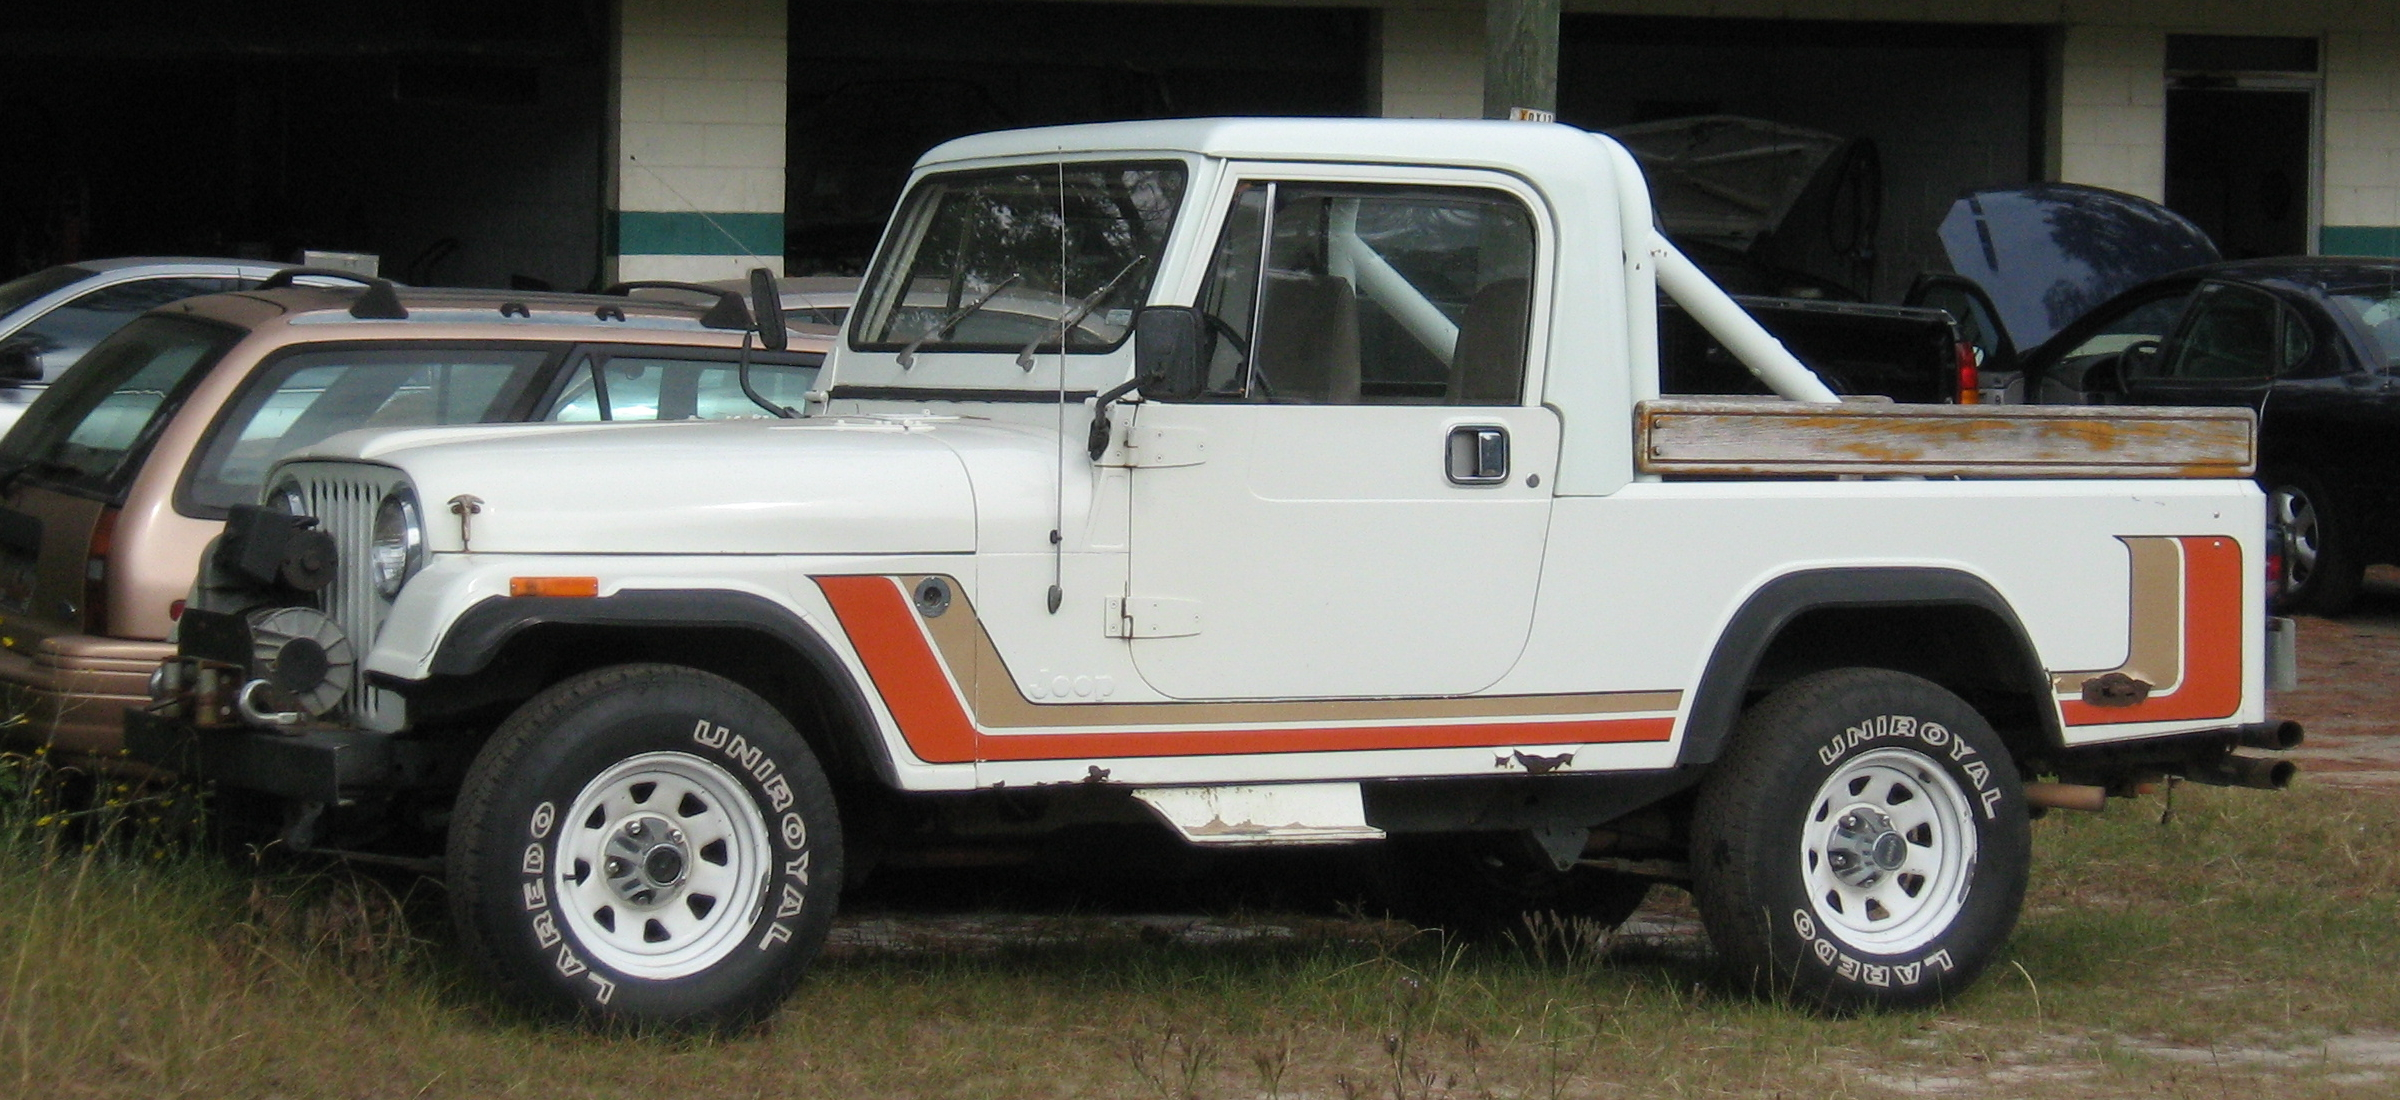 jeep scrambler wiring diagram file jeep scrambler white sc a jpg wikimedia commons  file jeep scrambler white sc a jpg